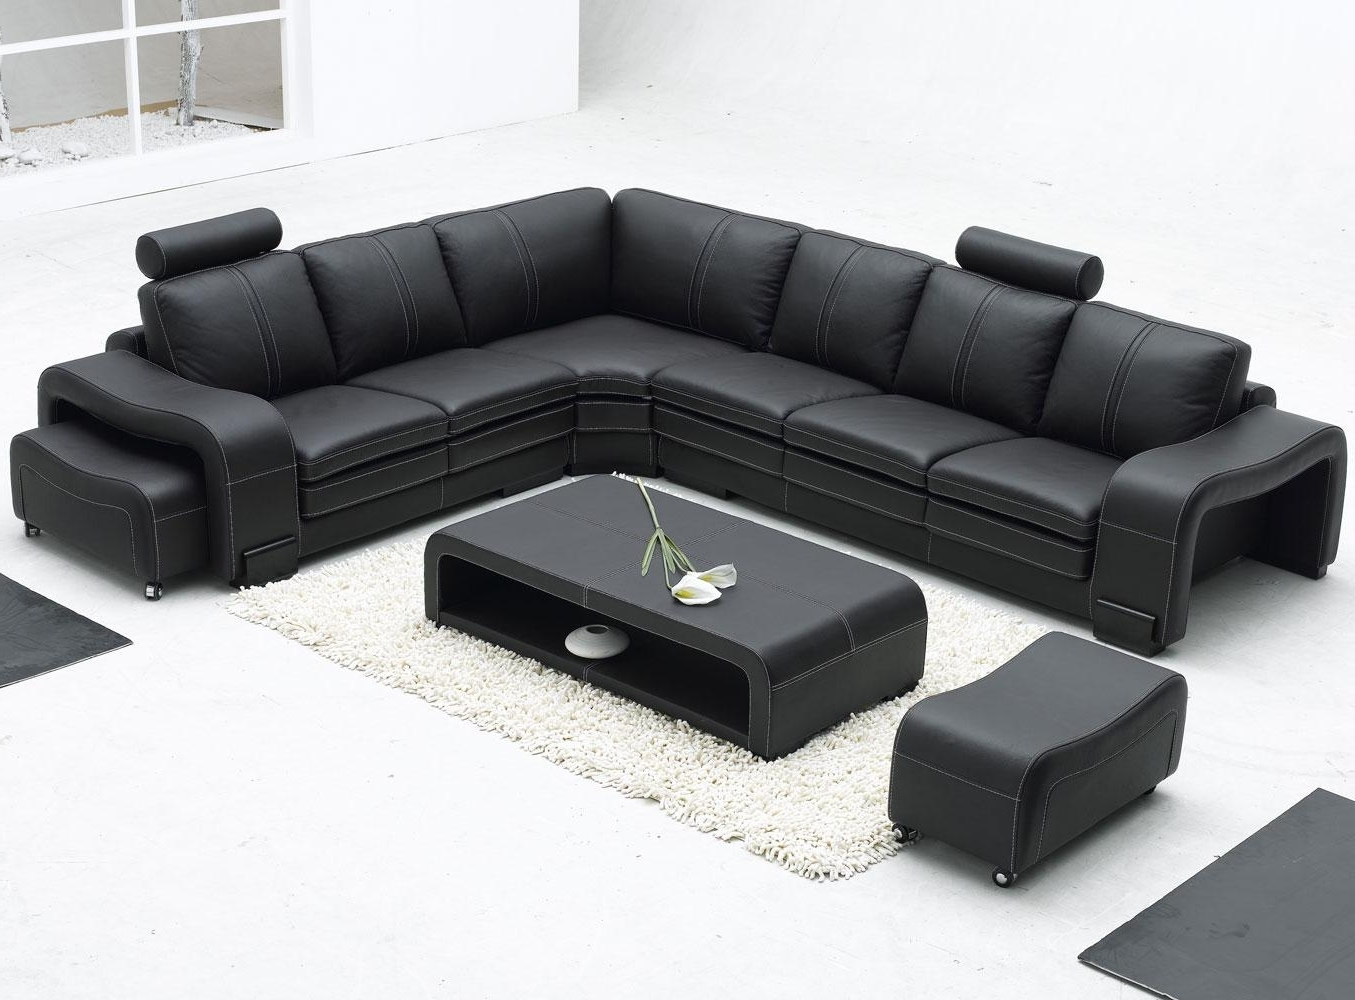 Leather L Shaped Sectional Sofas Intended For Latest Sofa : Sofa And Chair Contemporary Leather Sectional With Recliner (View 5 of 20)